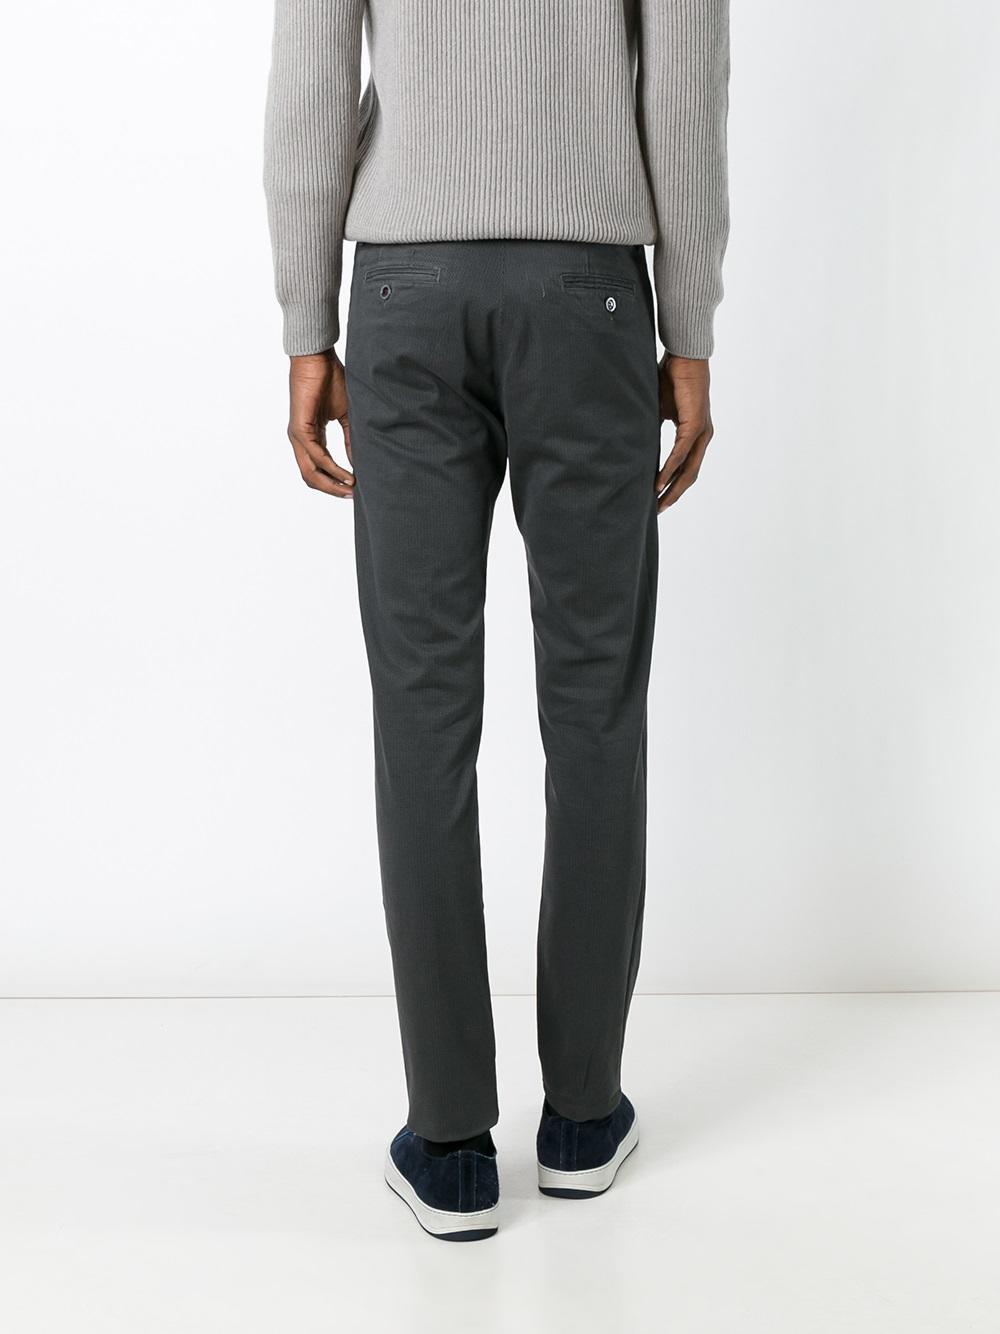 Re-hash Cotton 'mucha' Trousers in Grey (Grey) for Men